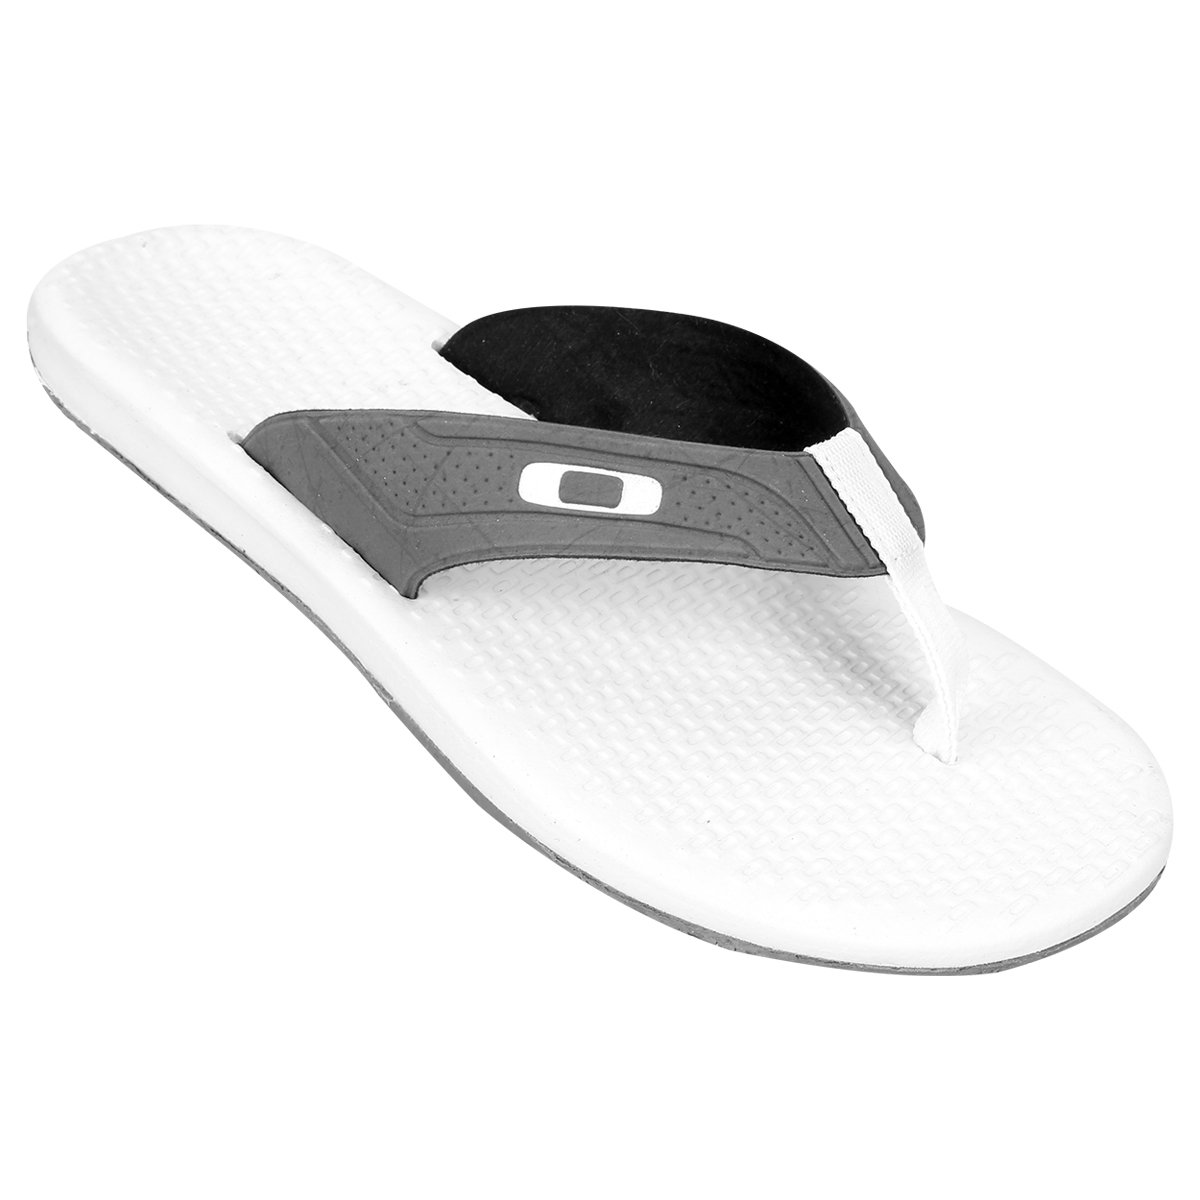 58ed719c02519 Chinelo Oakley Keel - Compre Agora